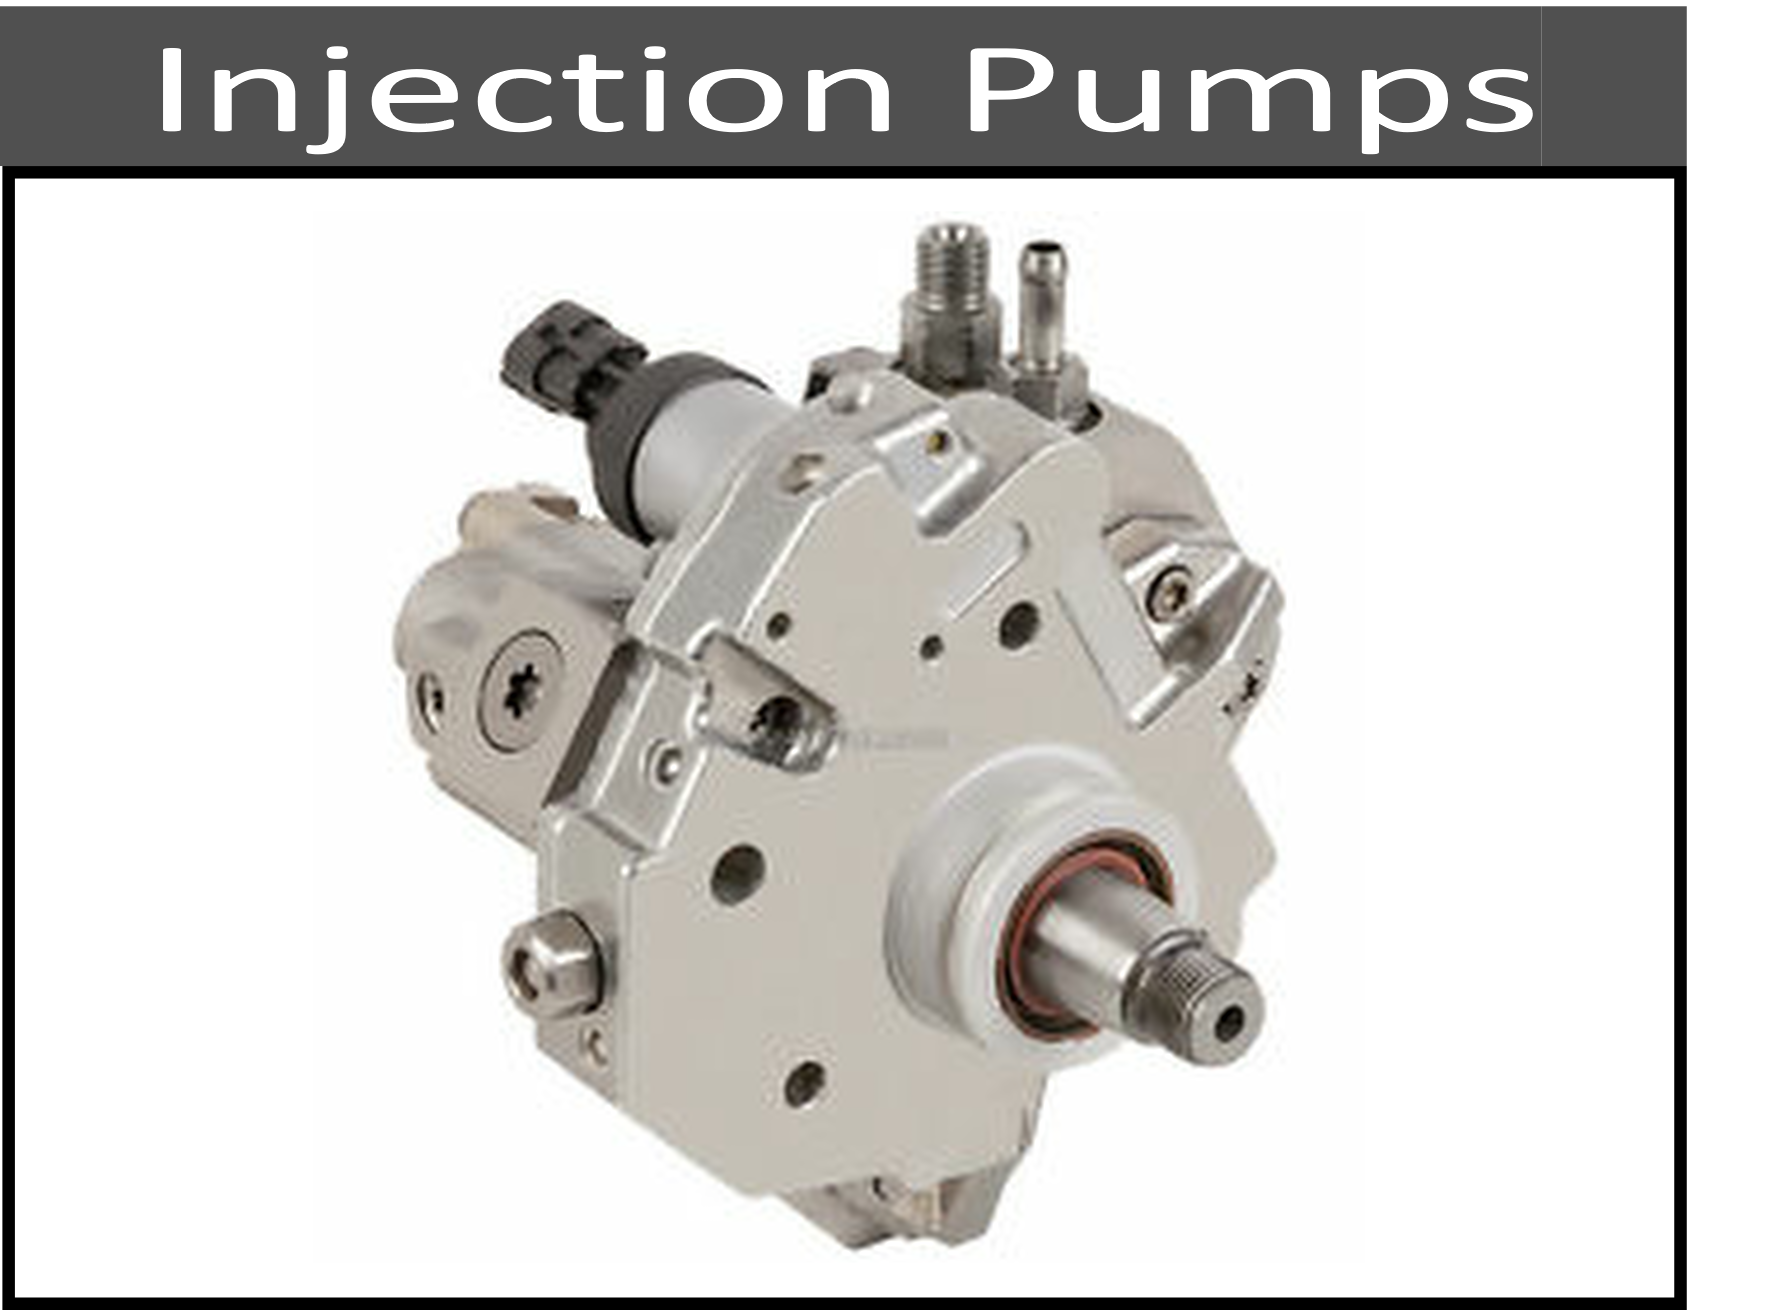 Stock and Upgraded Injection Pumps